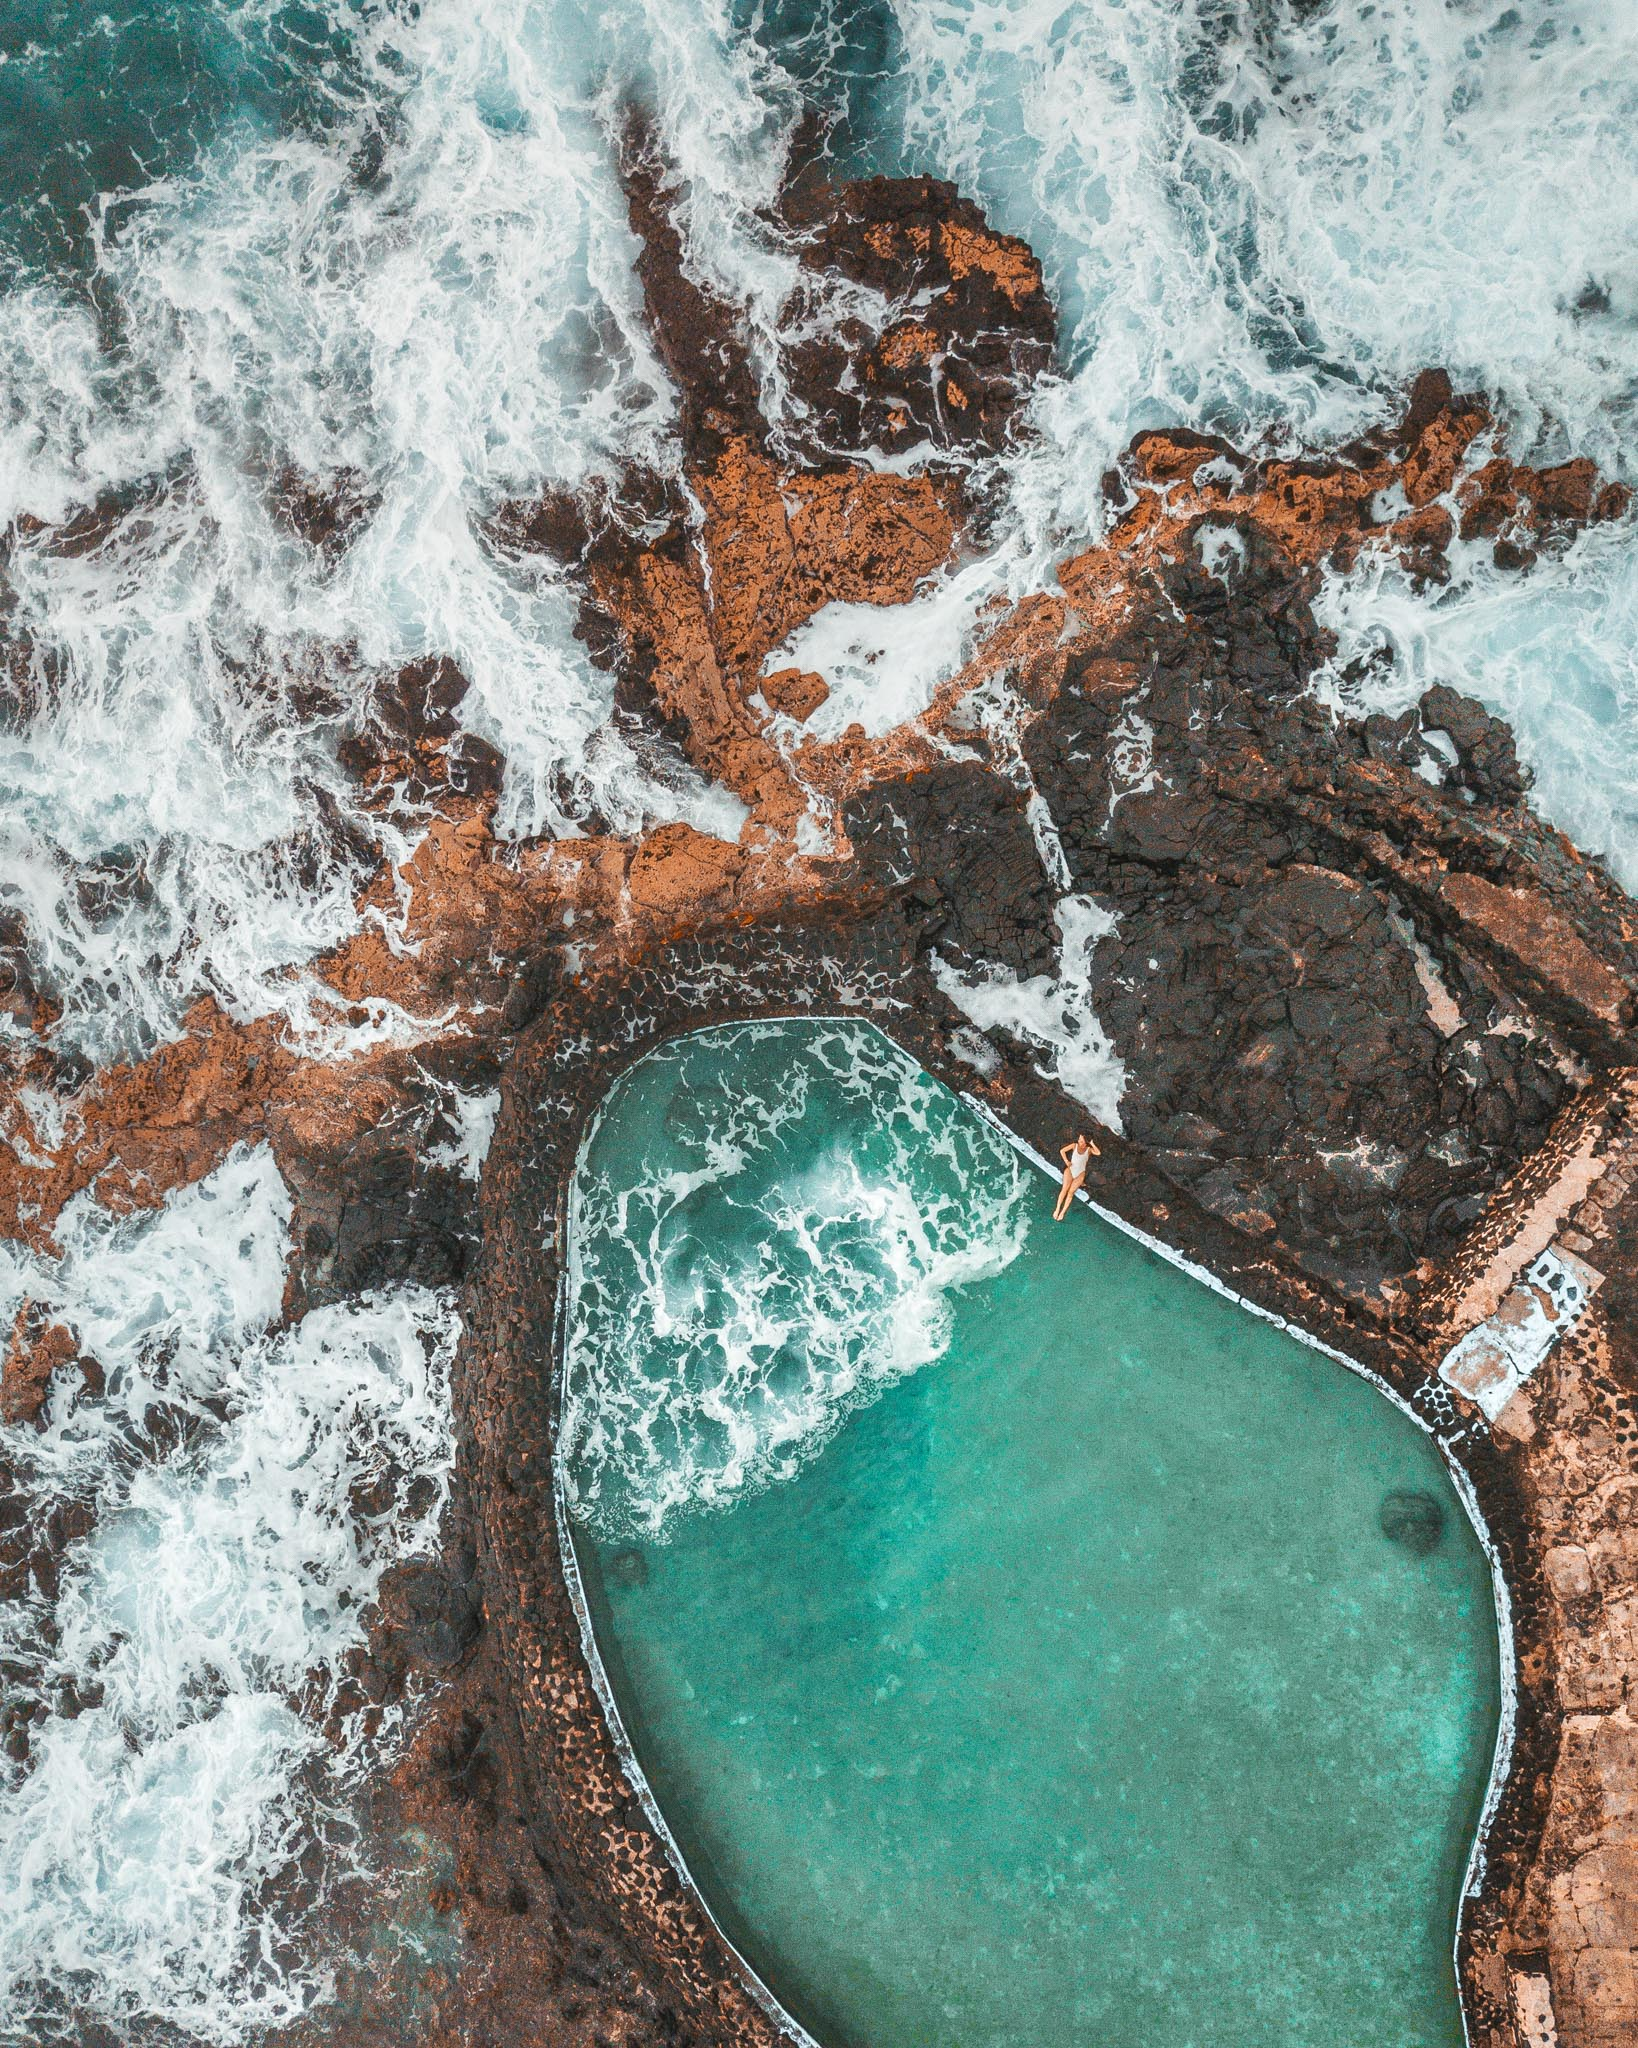 Rivi's Saltwater secret pool  // 10 Things You Have to Do on the Big Island of Hawaii // www.readysetjetset.net #readysetjetset #hawaii #bigisland #blogpost #hawaiiguide